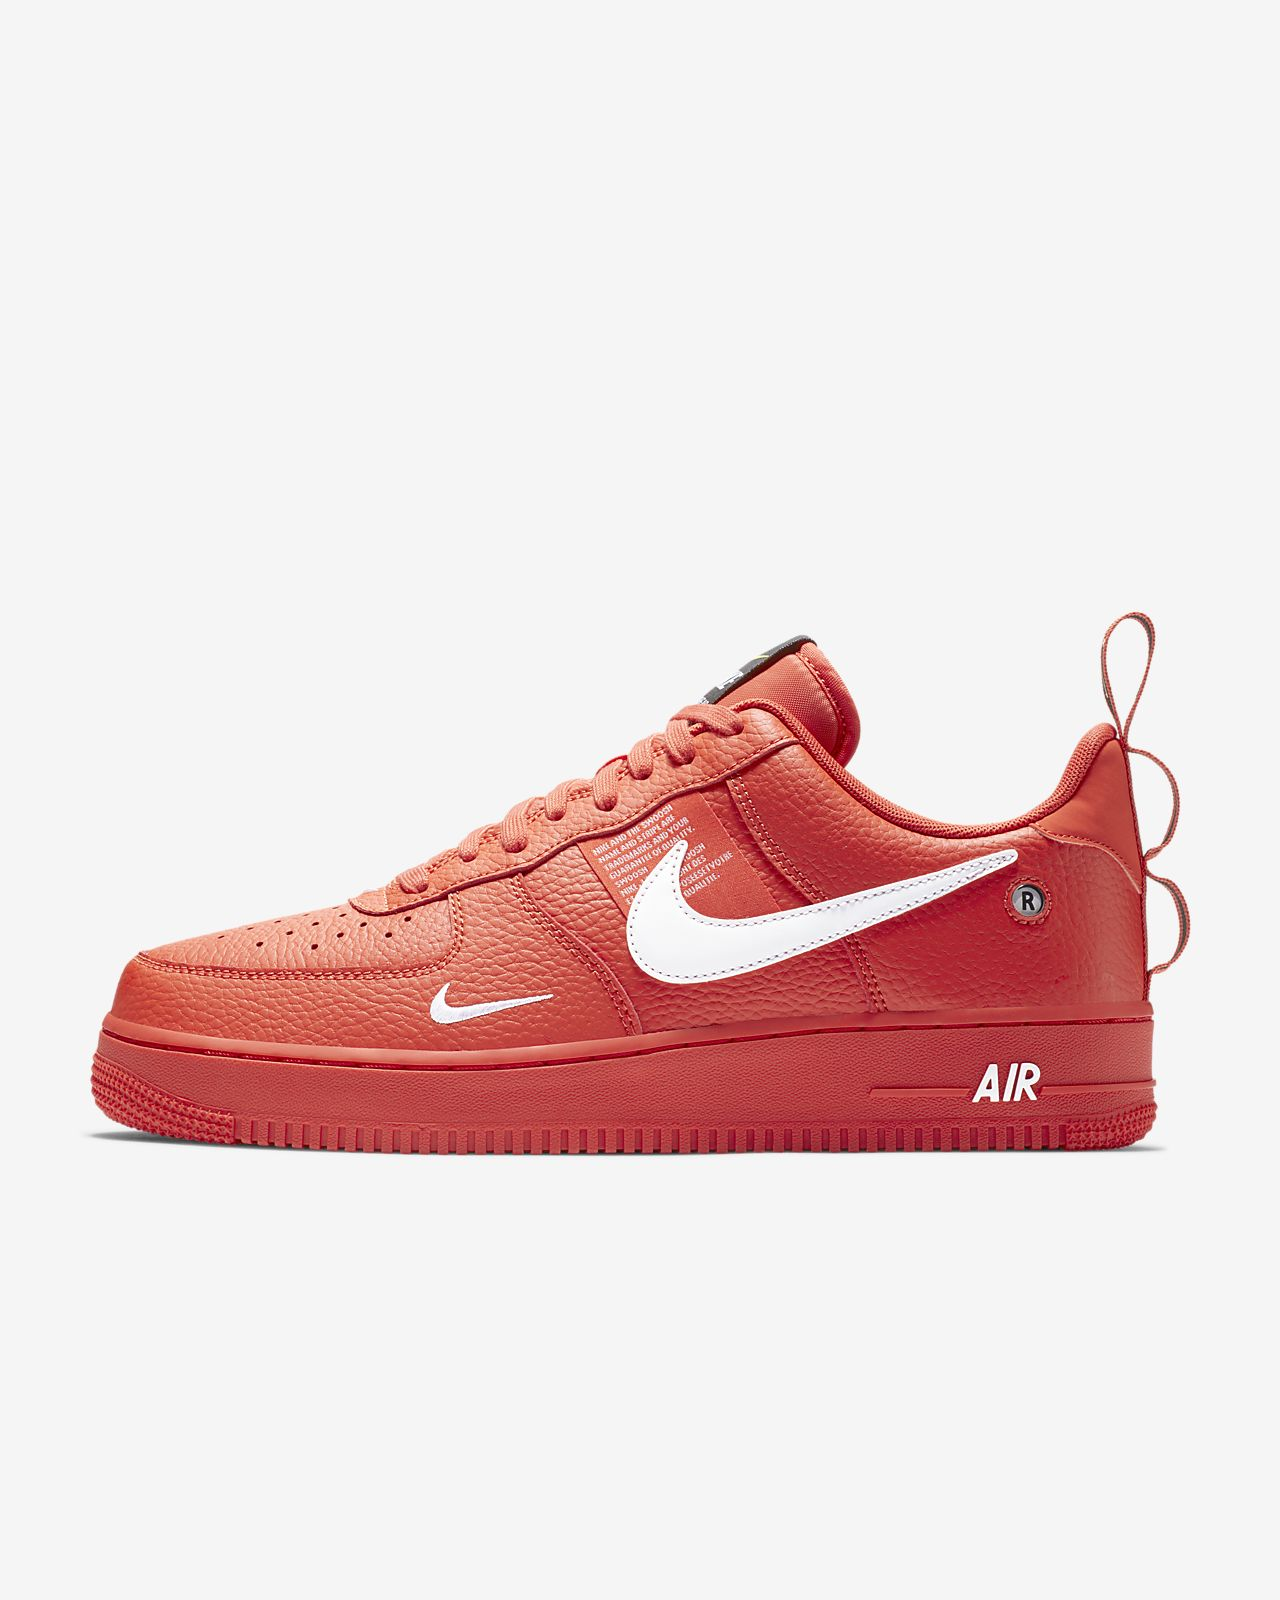 426c9cbb9e004 Nike Air Force 1  07 LV8 Utility Men s Shoe. Nike.com ZA